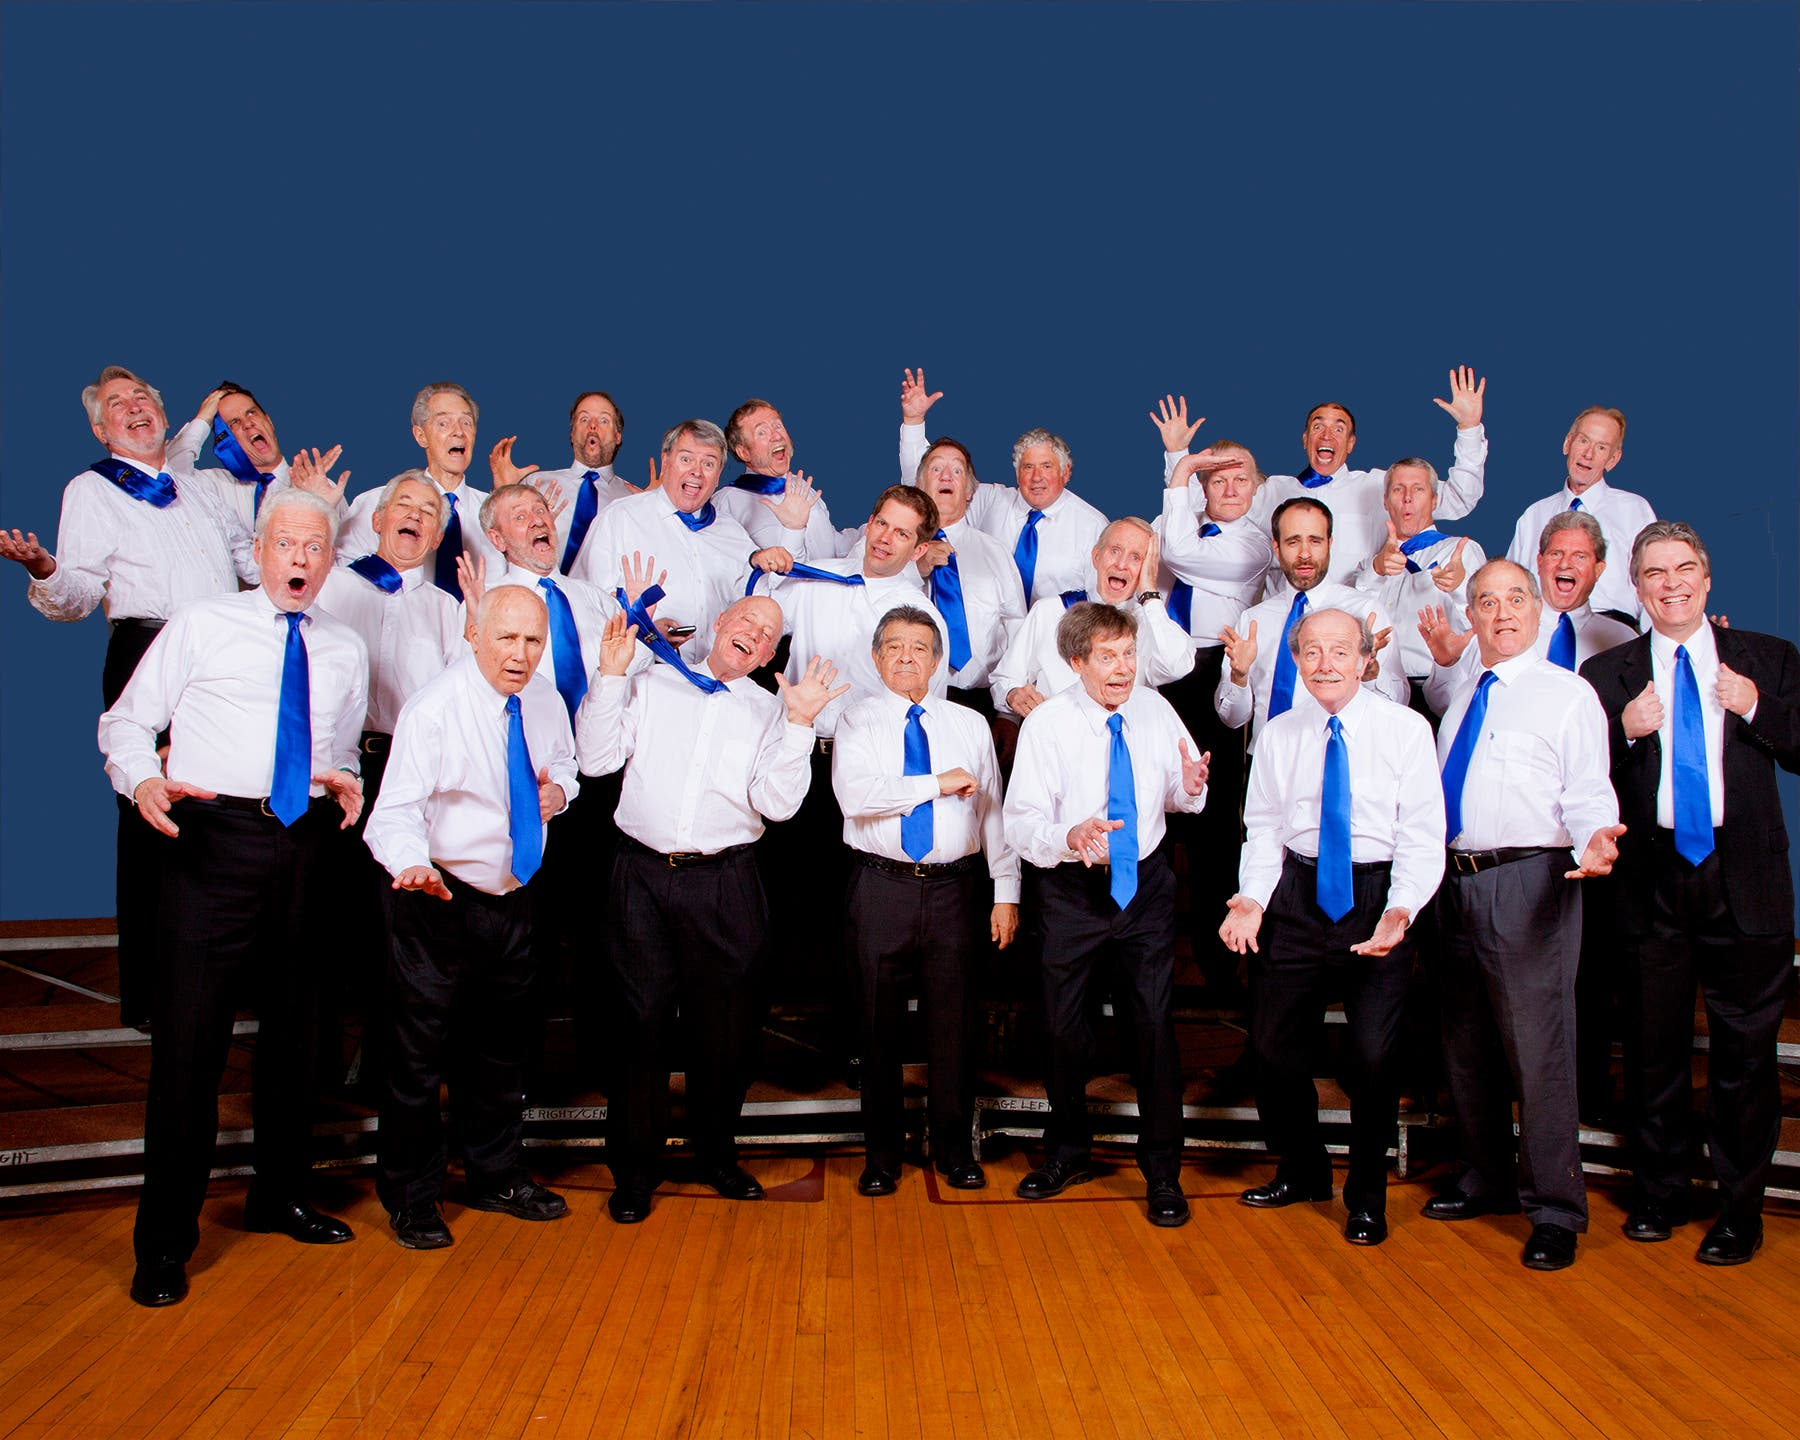 Come hear 4 part Acapella Harmony for free  Marin Barbershop Chorus